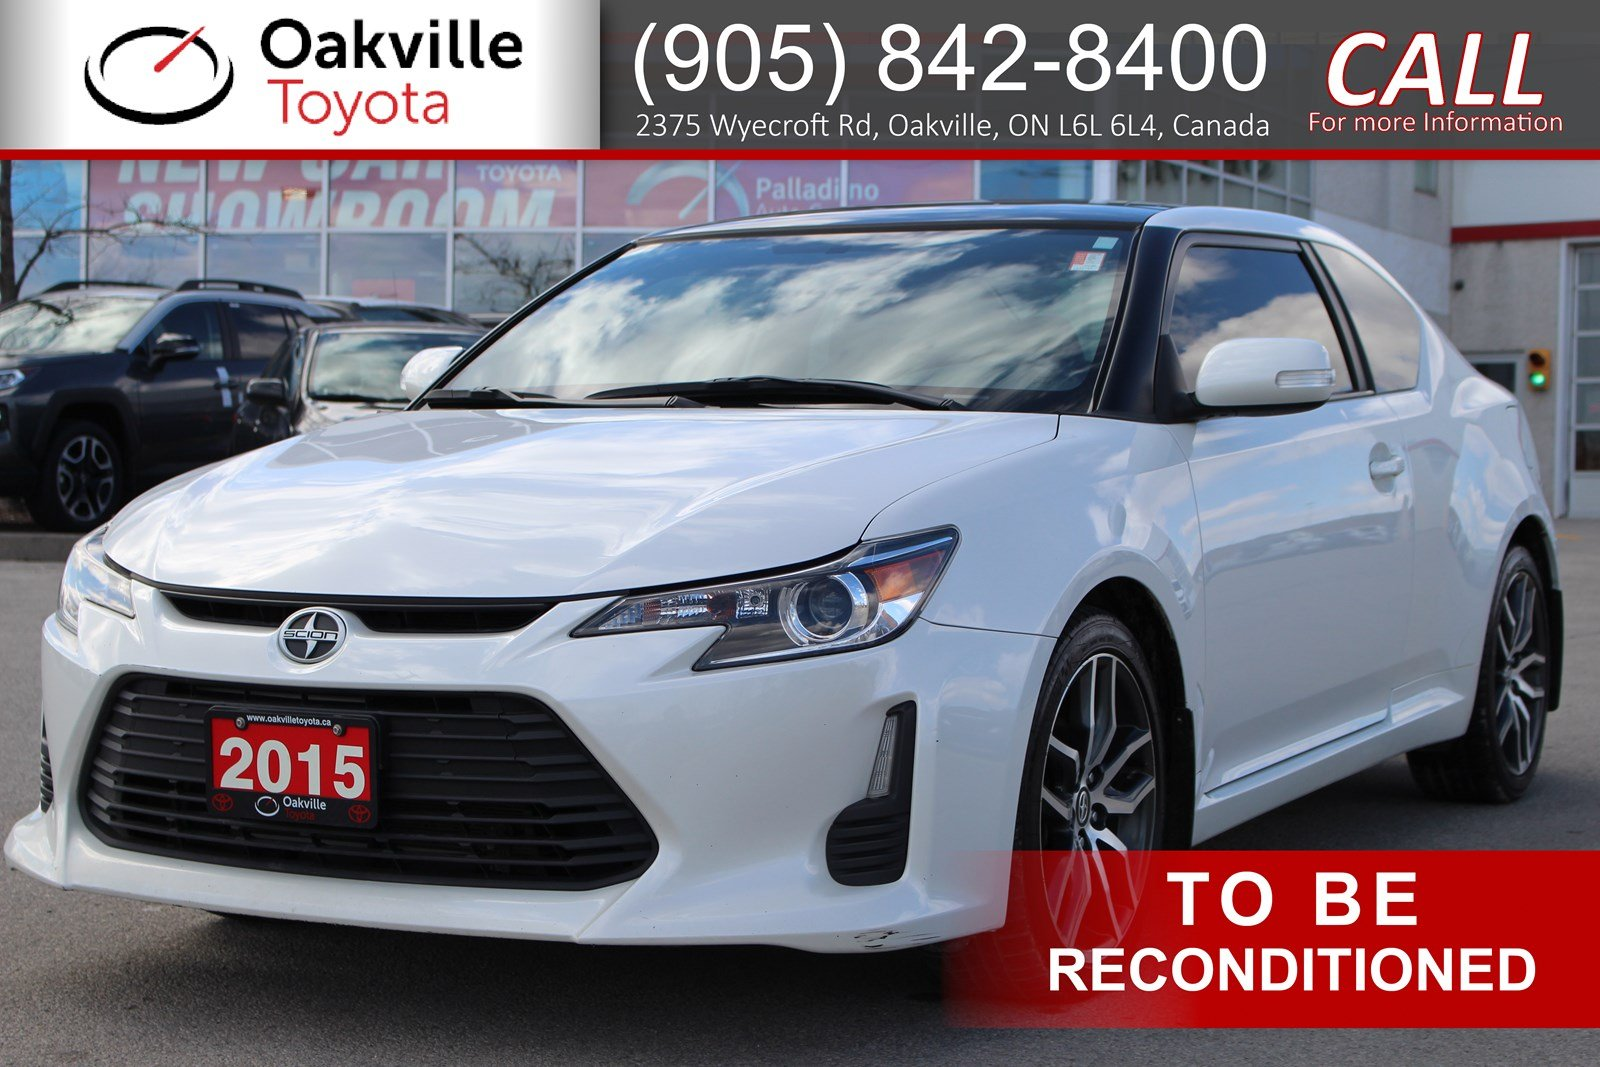 Pre-Owned 2015 Scion tC Recent Trade-in with Clean Carfax